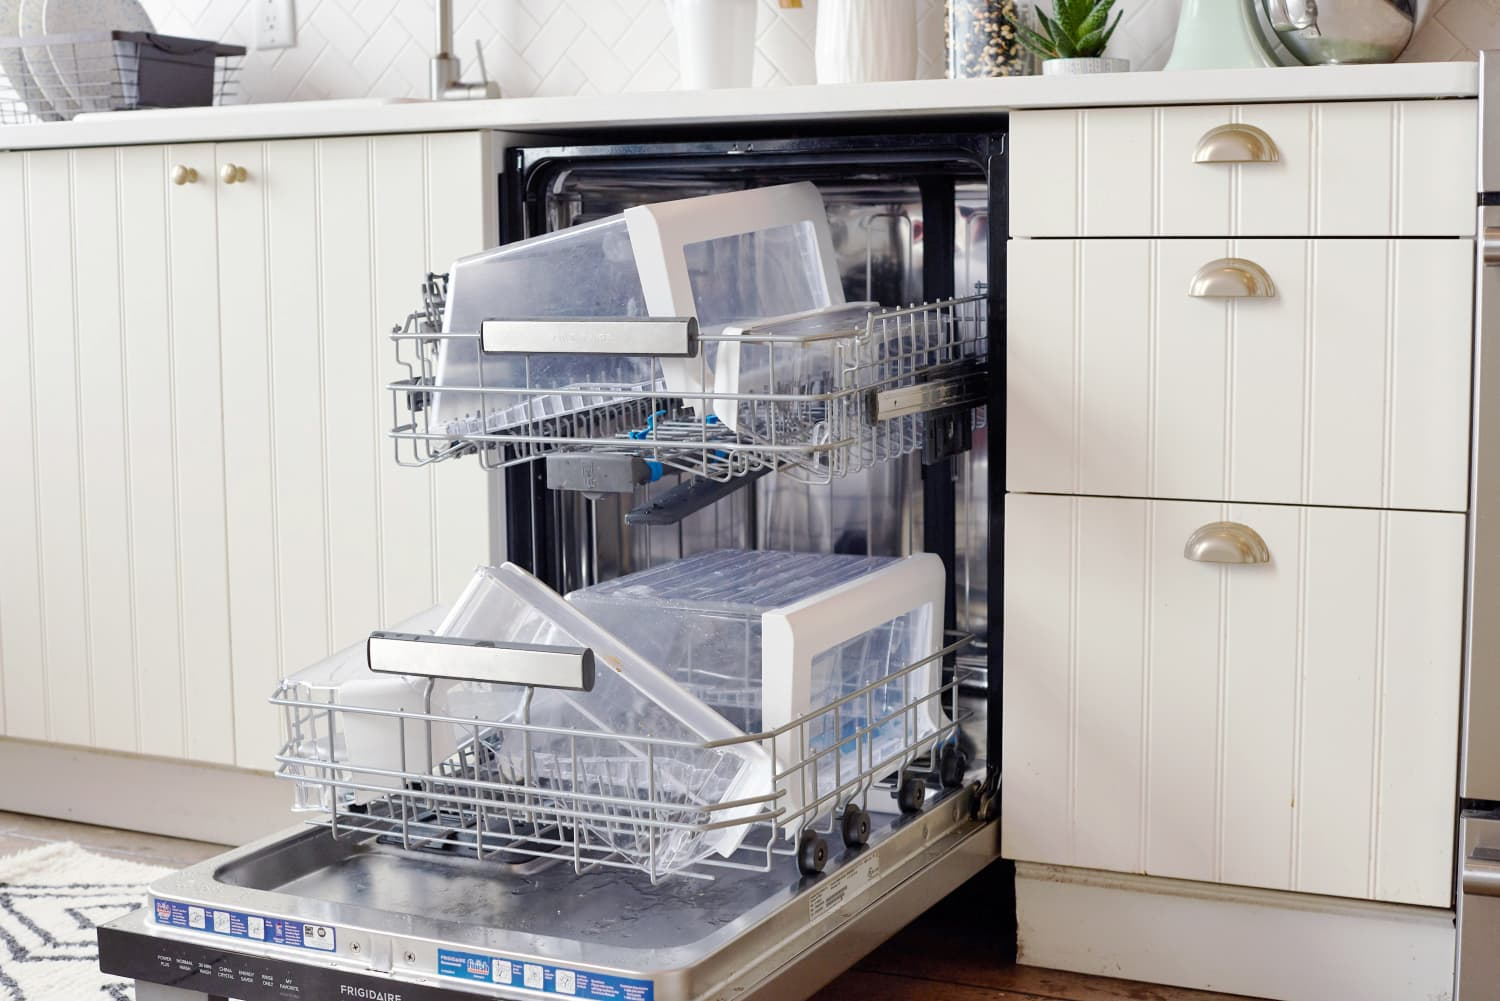 You Should Clean Your Fridge Shelves in the Dishwasher